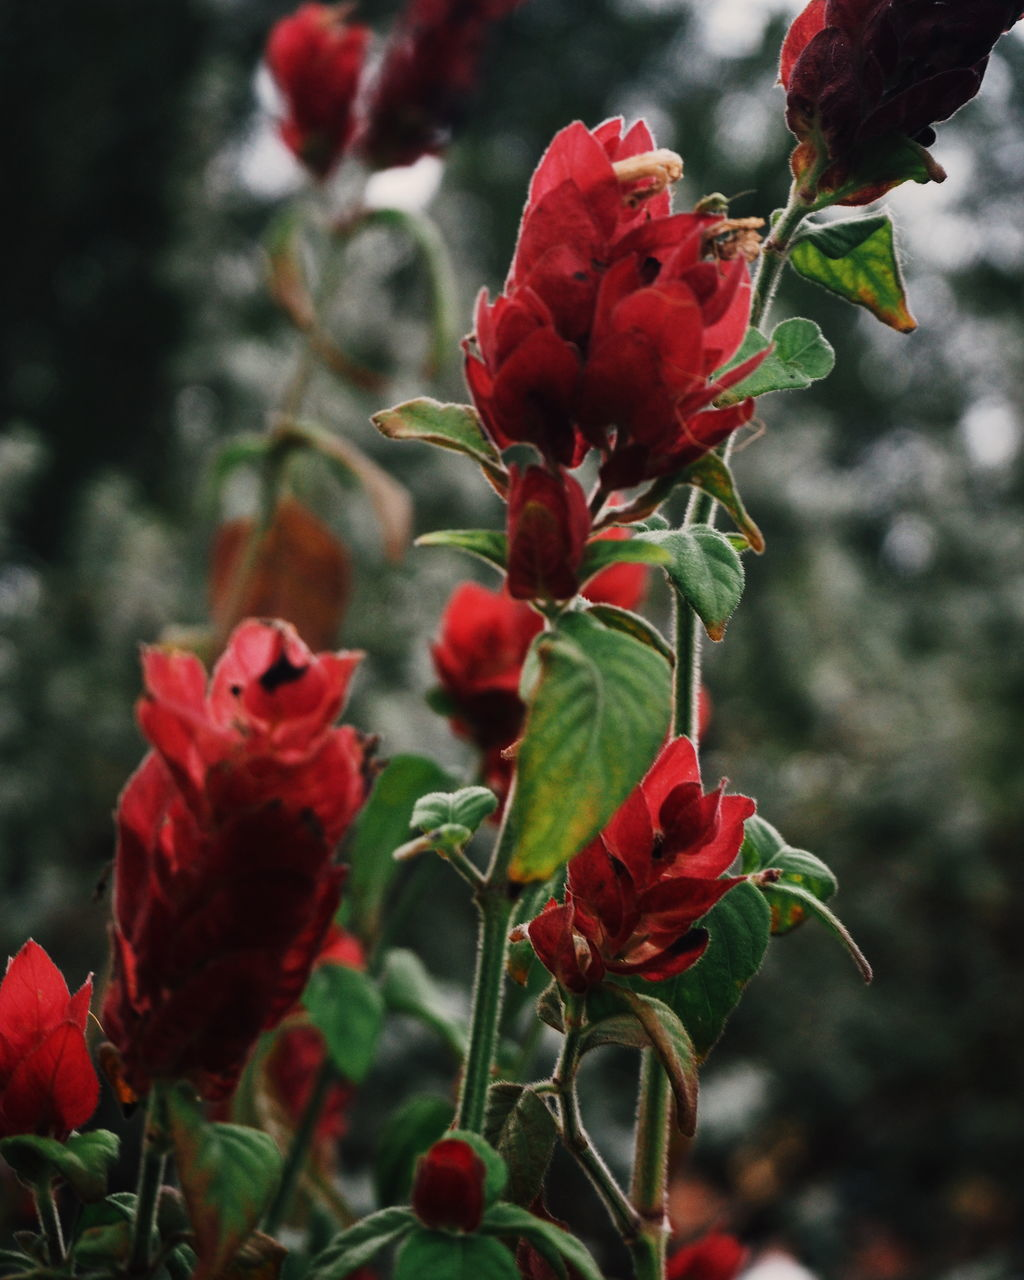 red, flower, growth, nature, beauty in nature, petal, plant, fragility, no people, focus on foreground, outdoors, freshness, blooming, flower head, close-up, day